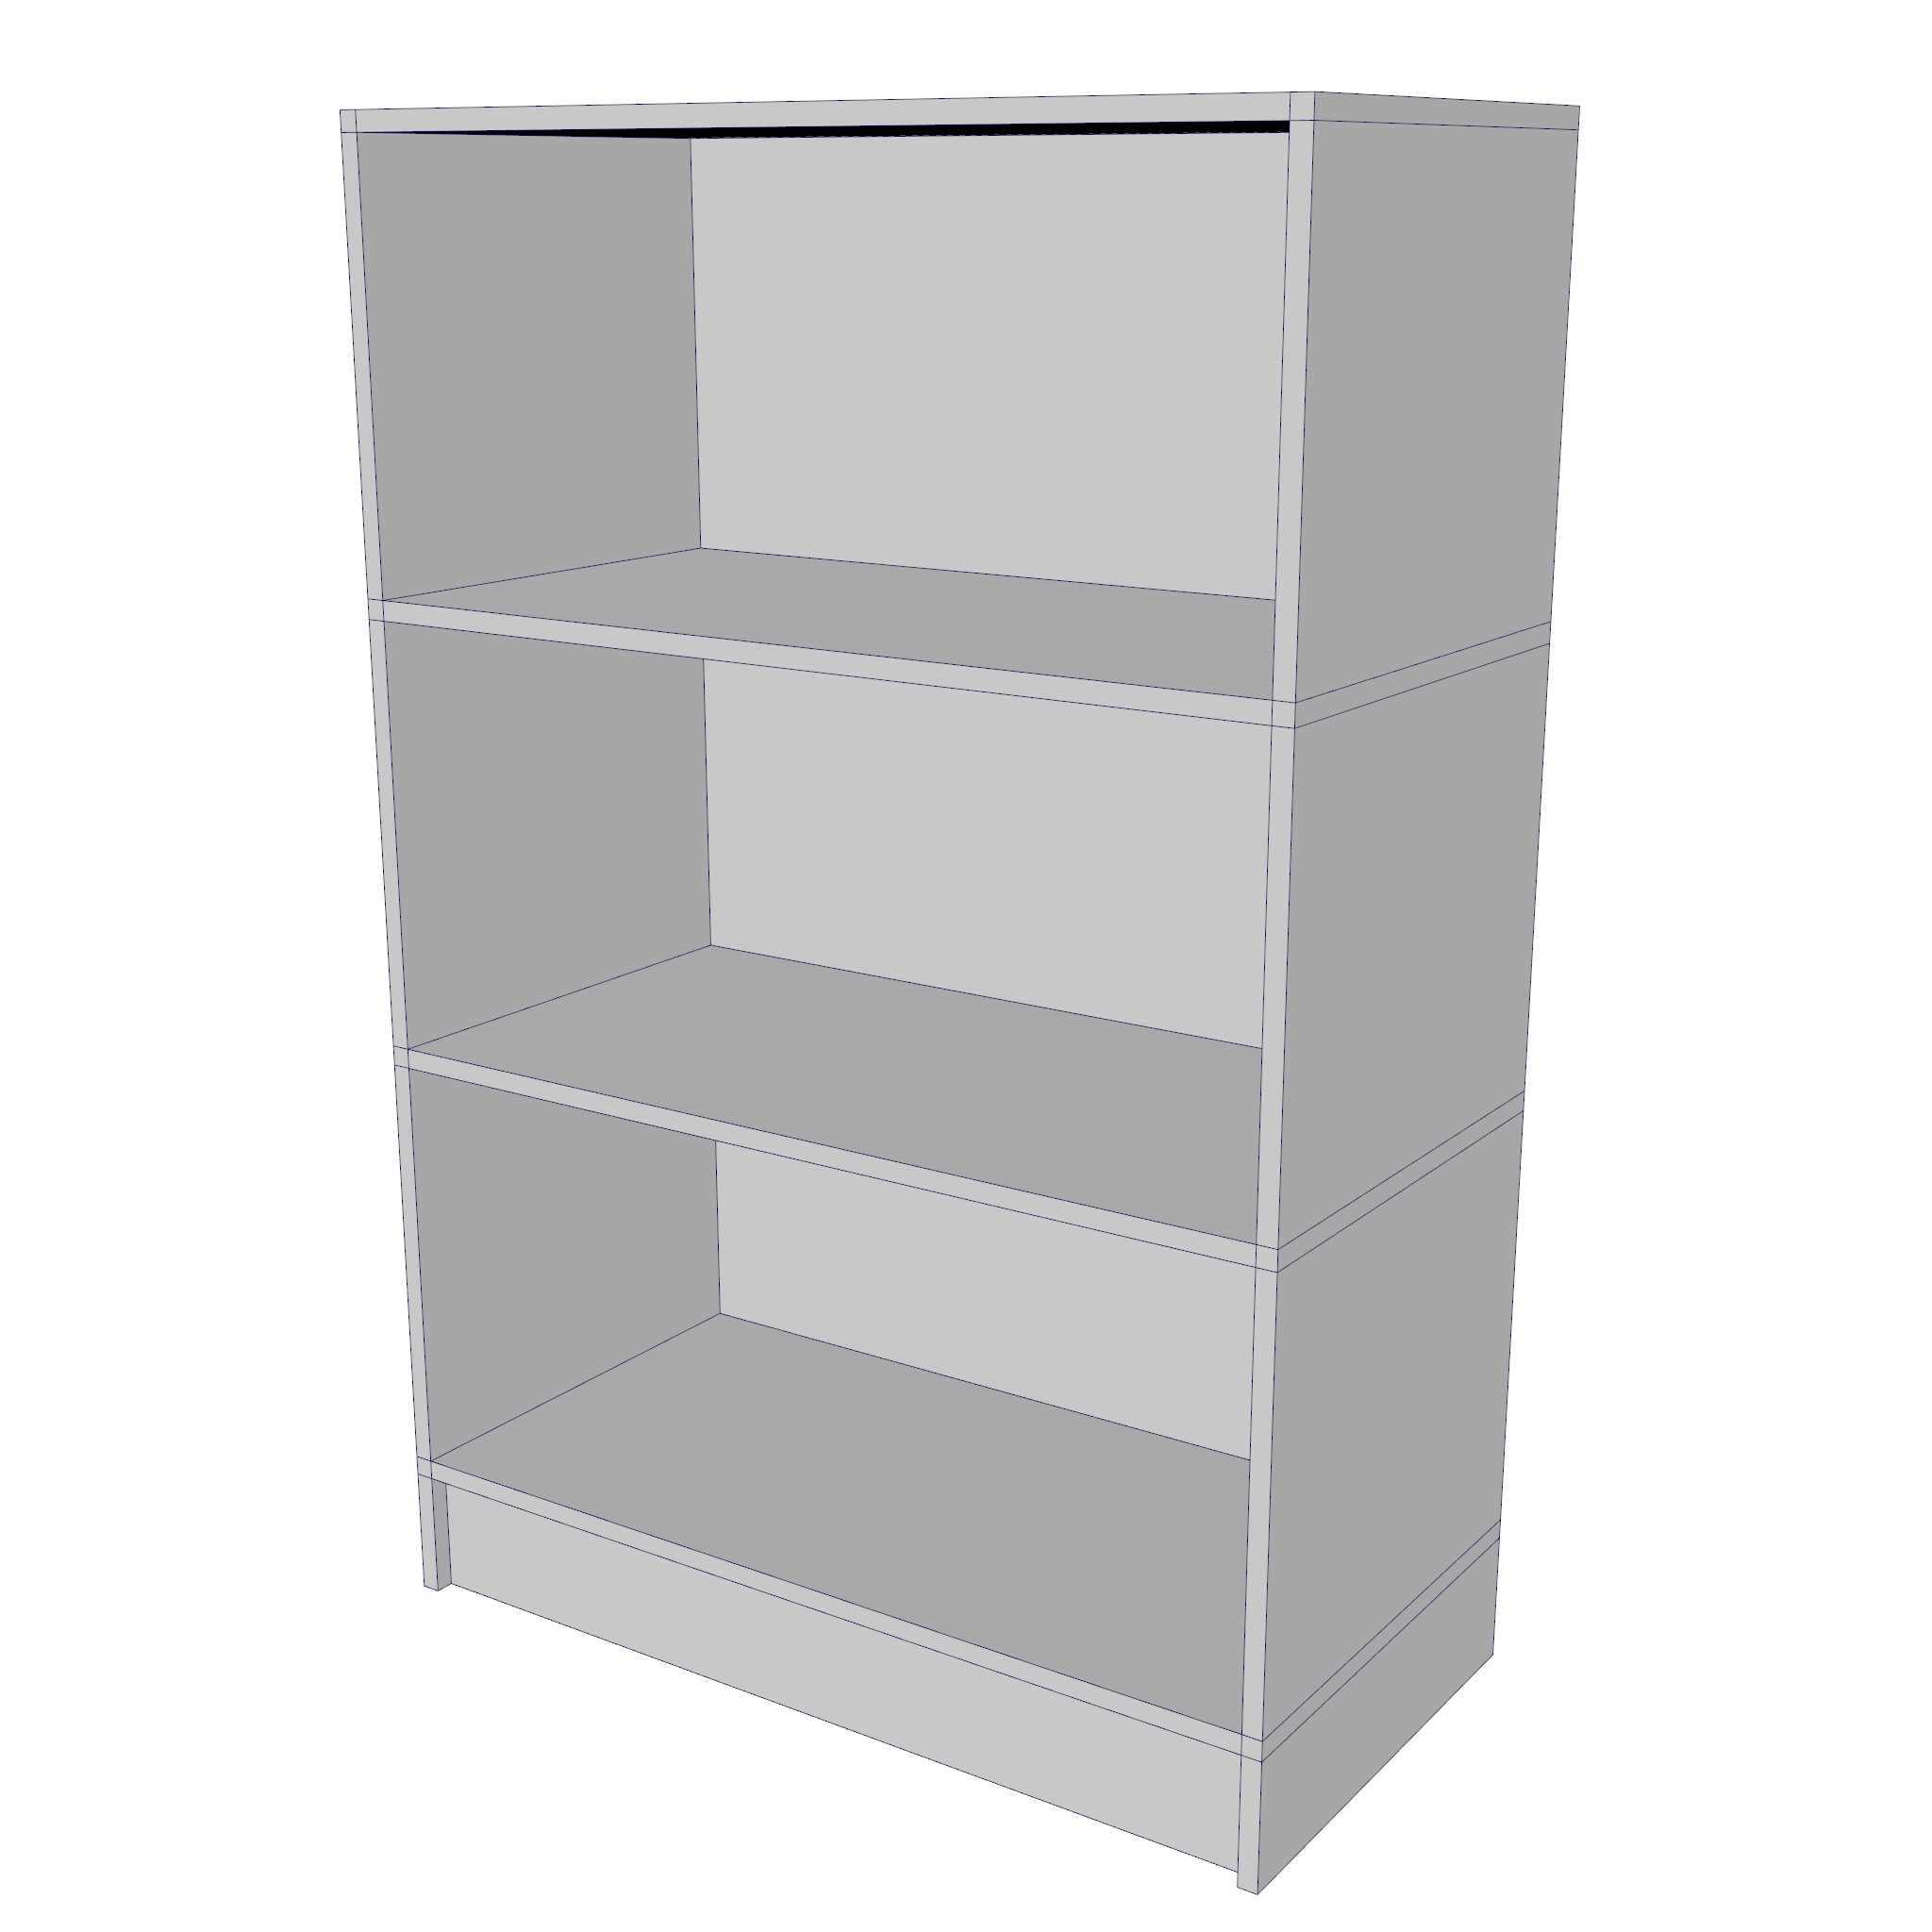 bookcase – two sizes 3d model 3ds fbx ma mb obj 271545